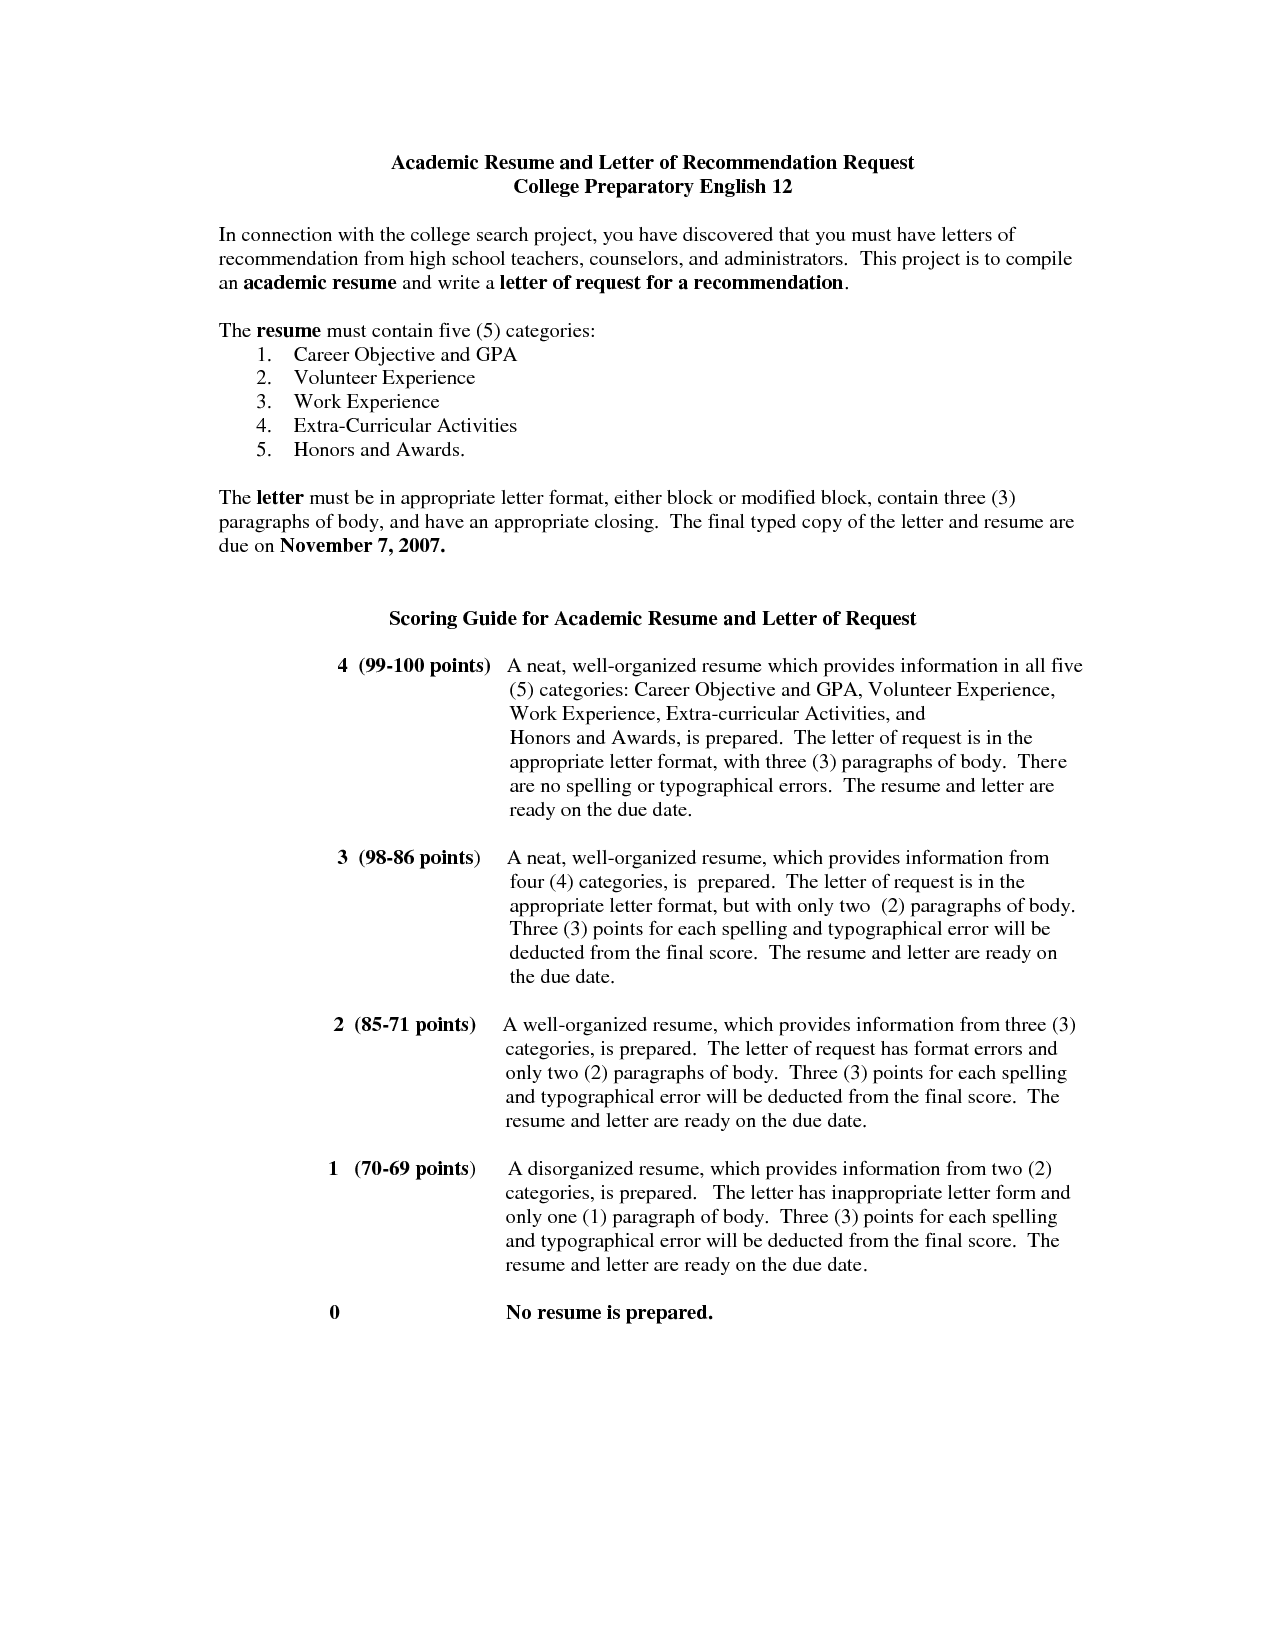 Resume Format Recommendations